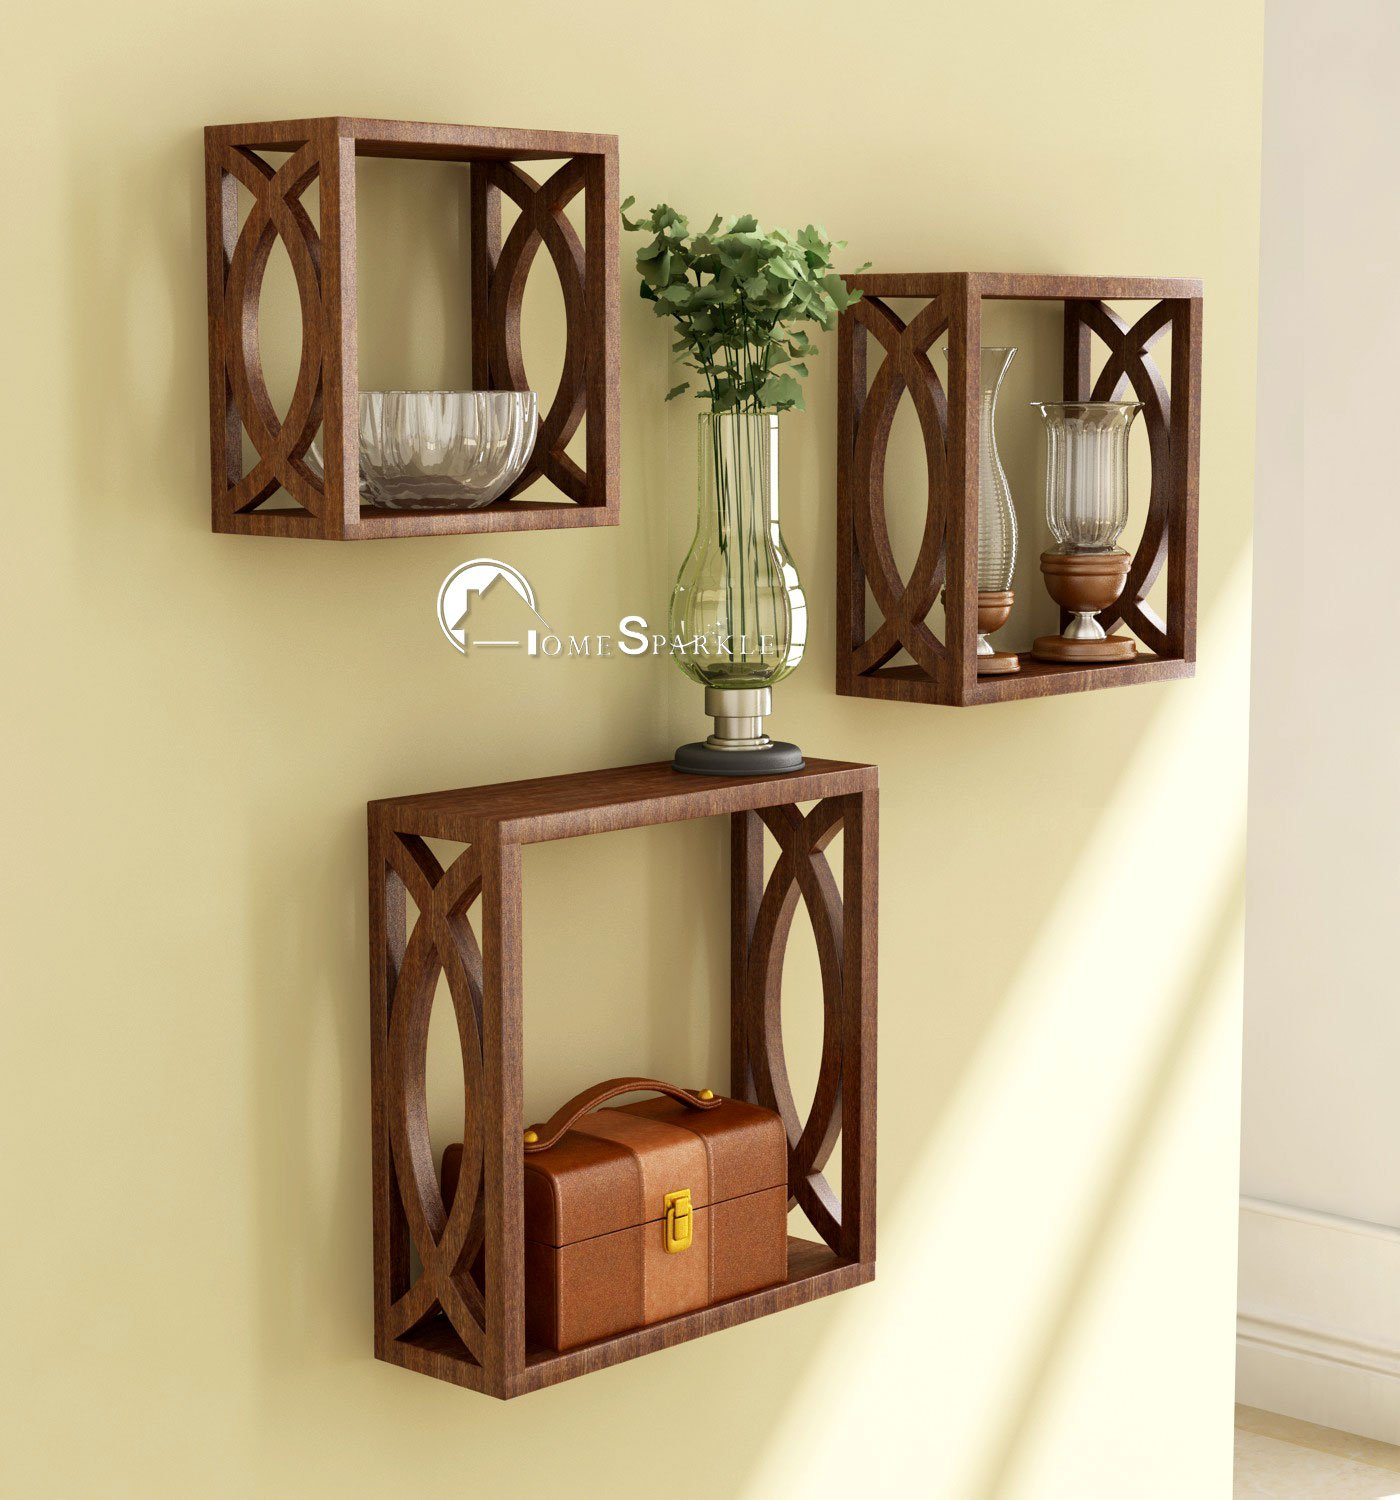 Home Sparkle MDF Wall Shelf | Cube Design Wall Mounted Shelves for Living Room – Set of 3